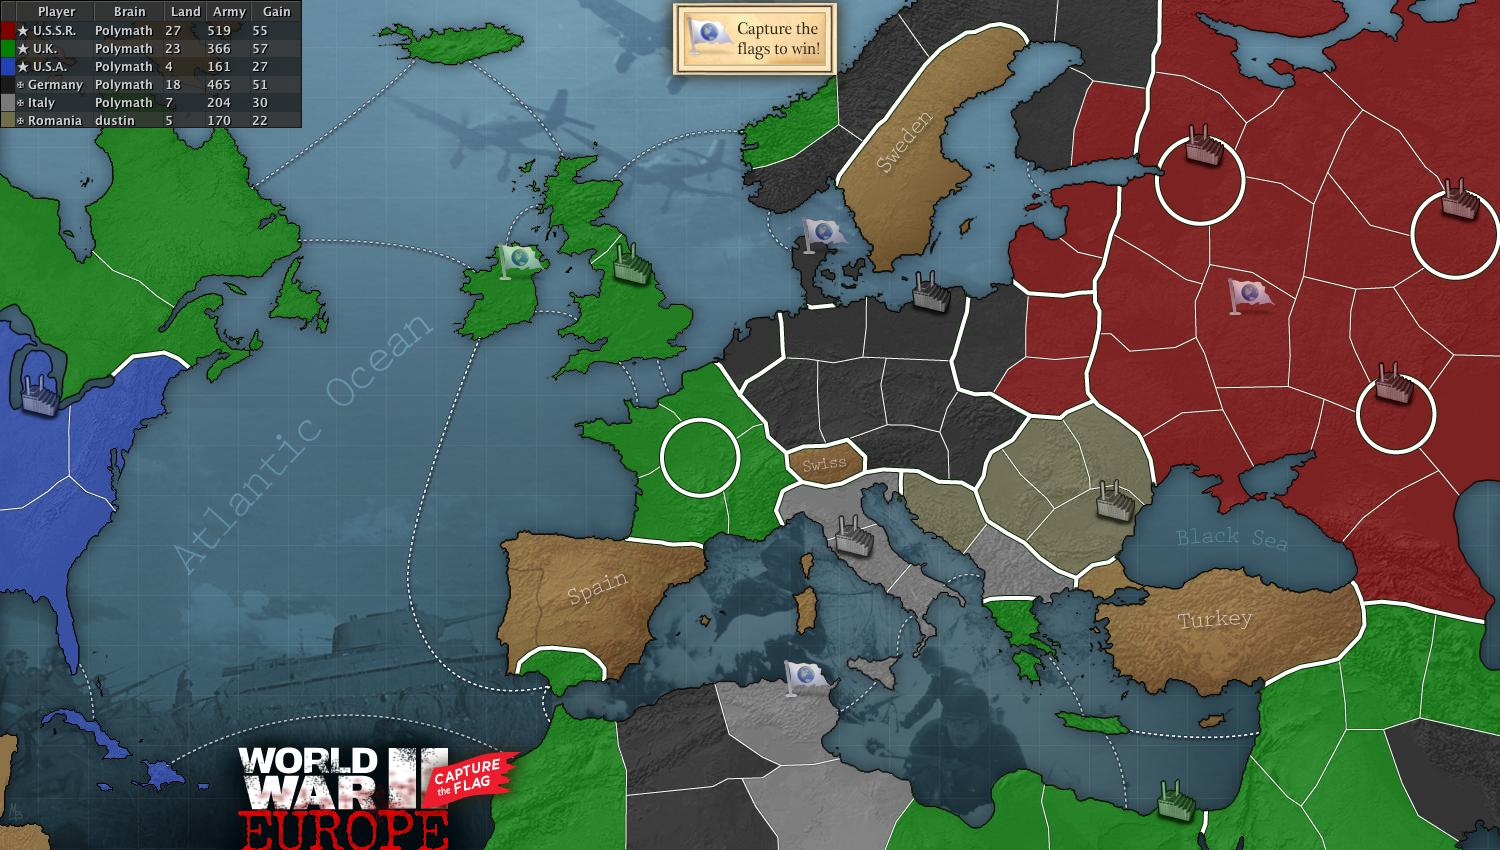 Ww2 europe ctf map gumiabroncs Choice Image